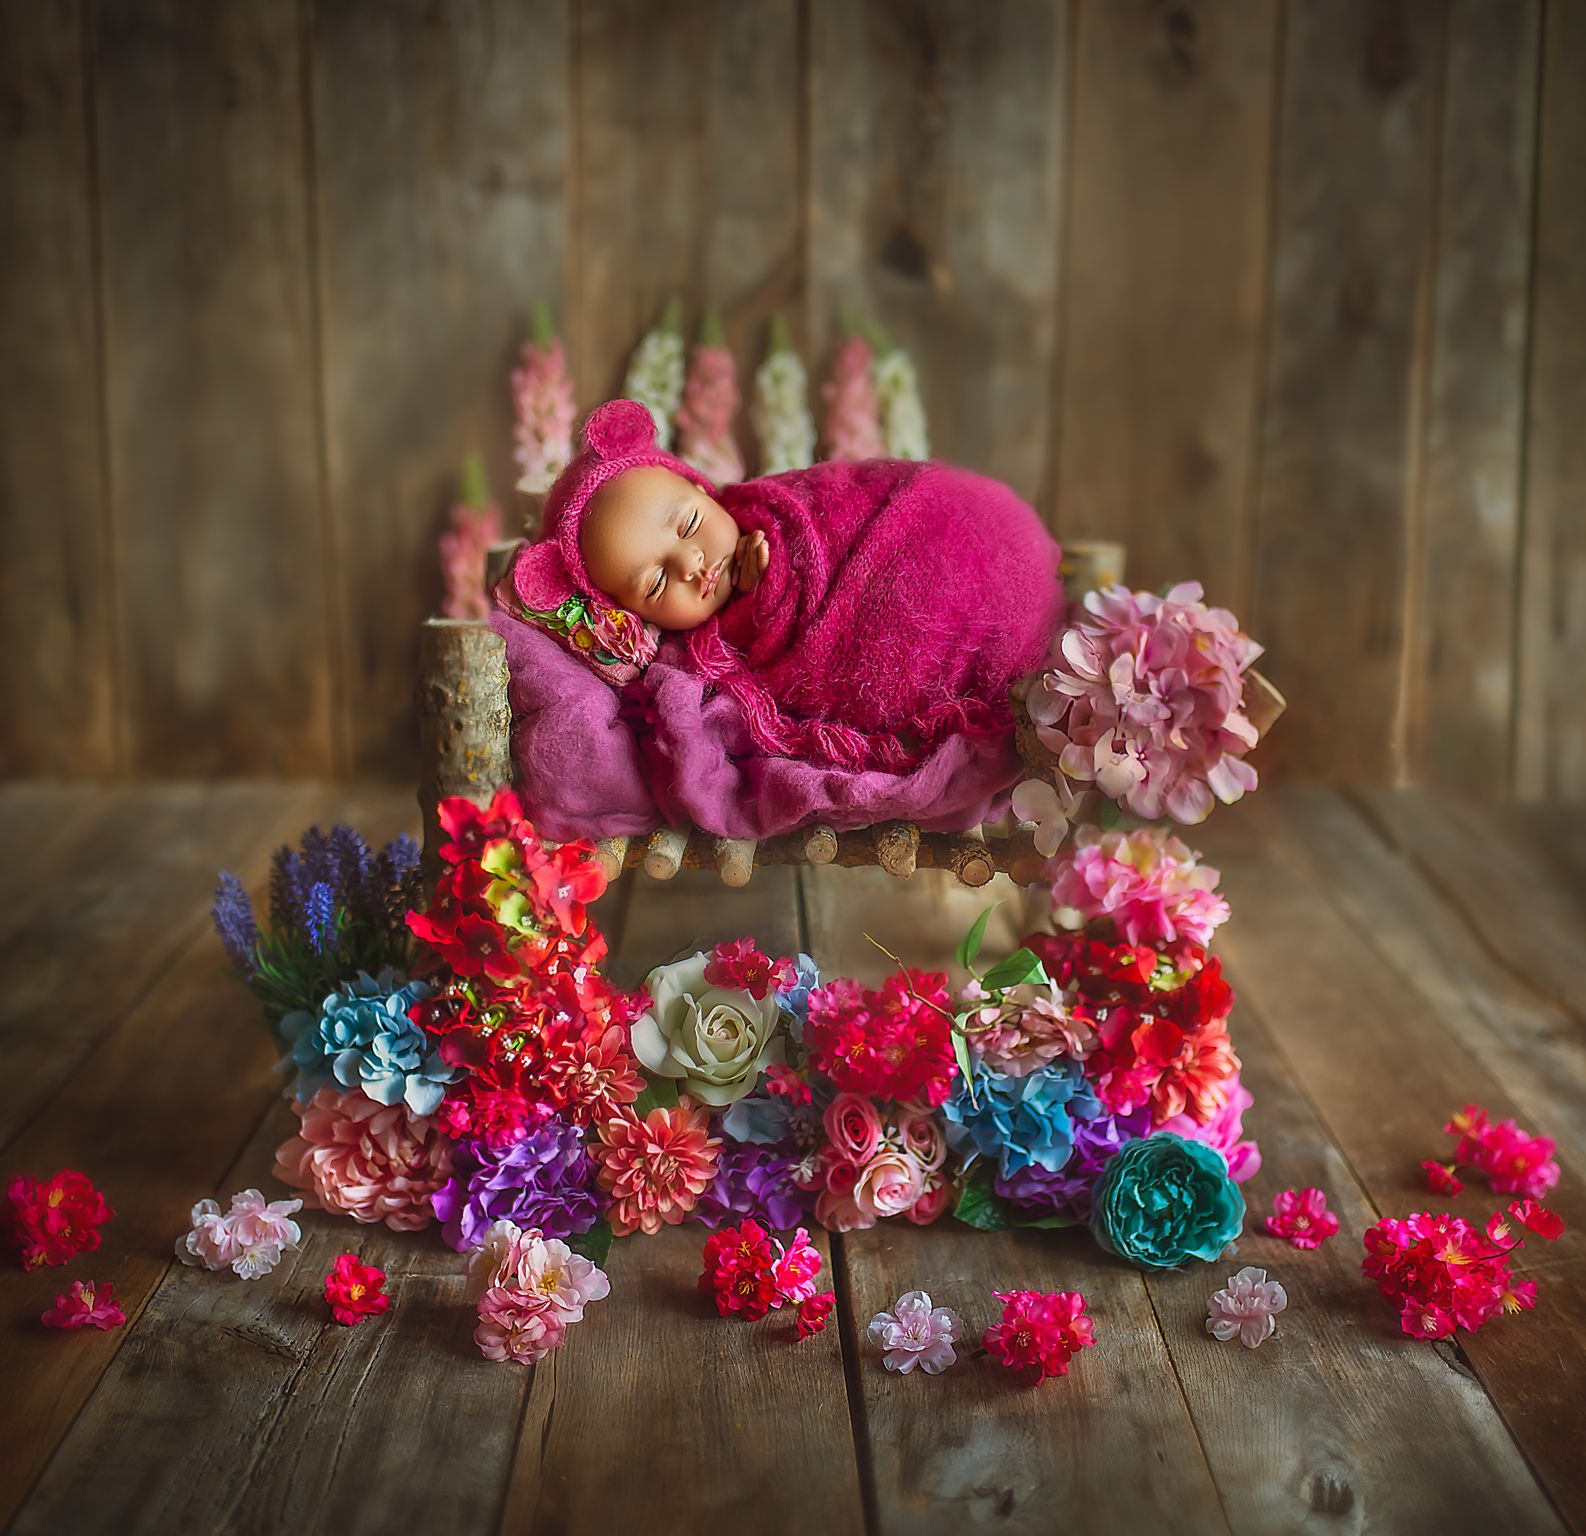 Newborn with prop for Baby Photoshoot by Sujata Setia - But Natural Photography